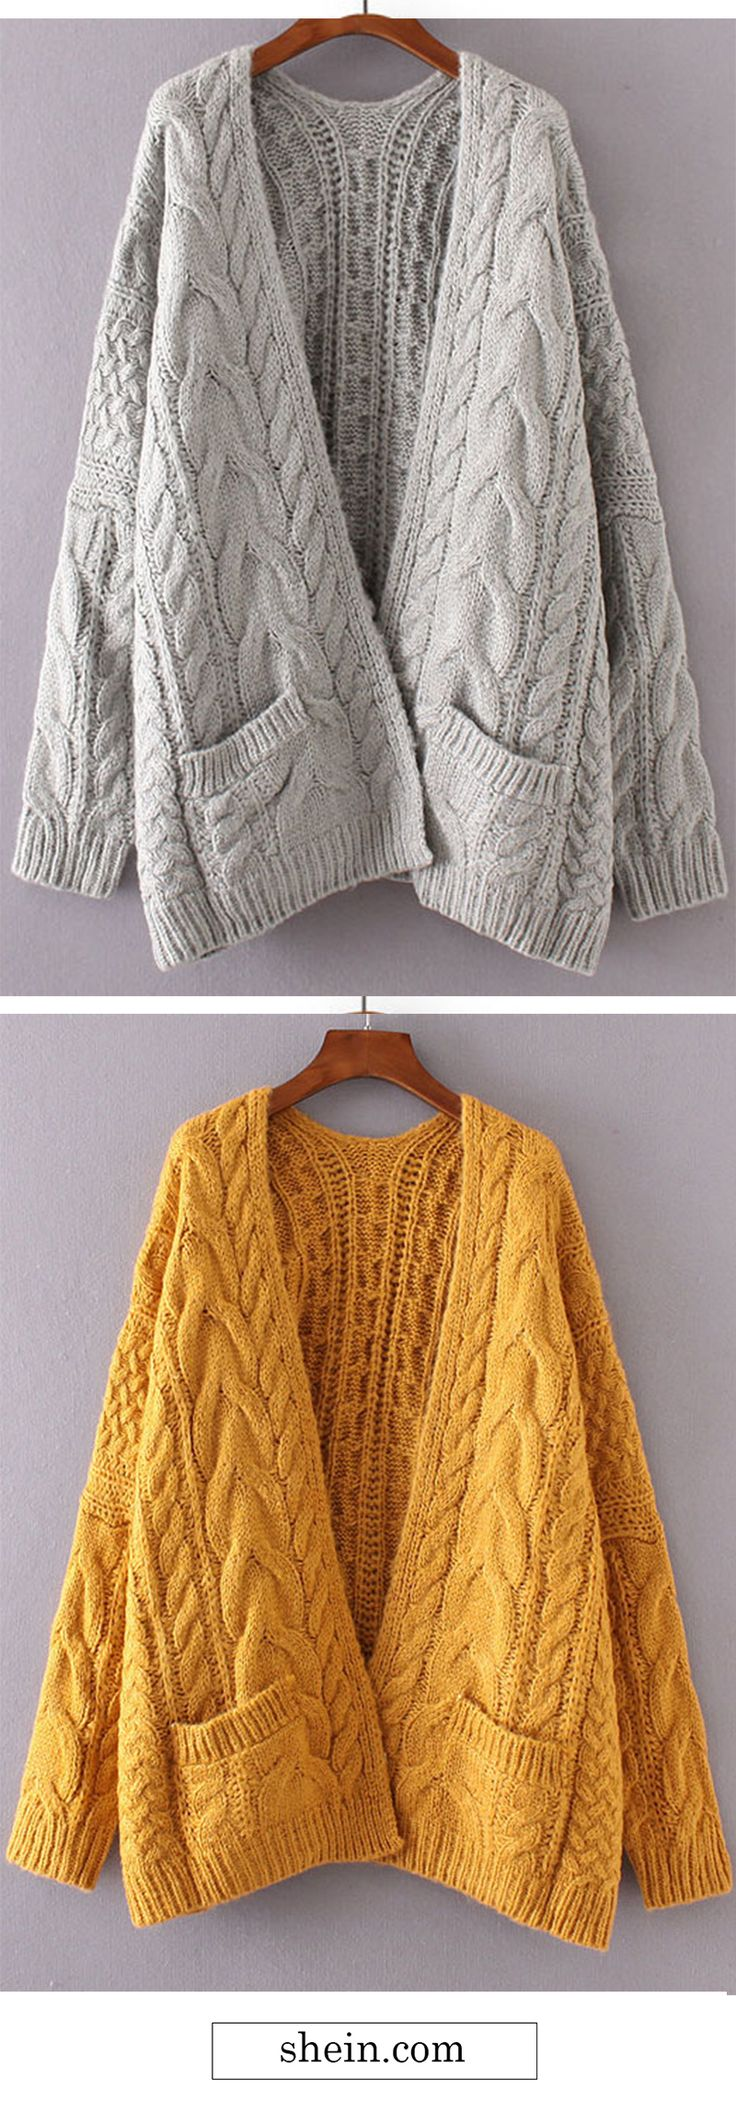 Drop shoulder cable knit cardigan.